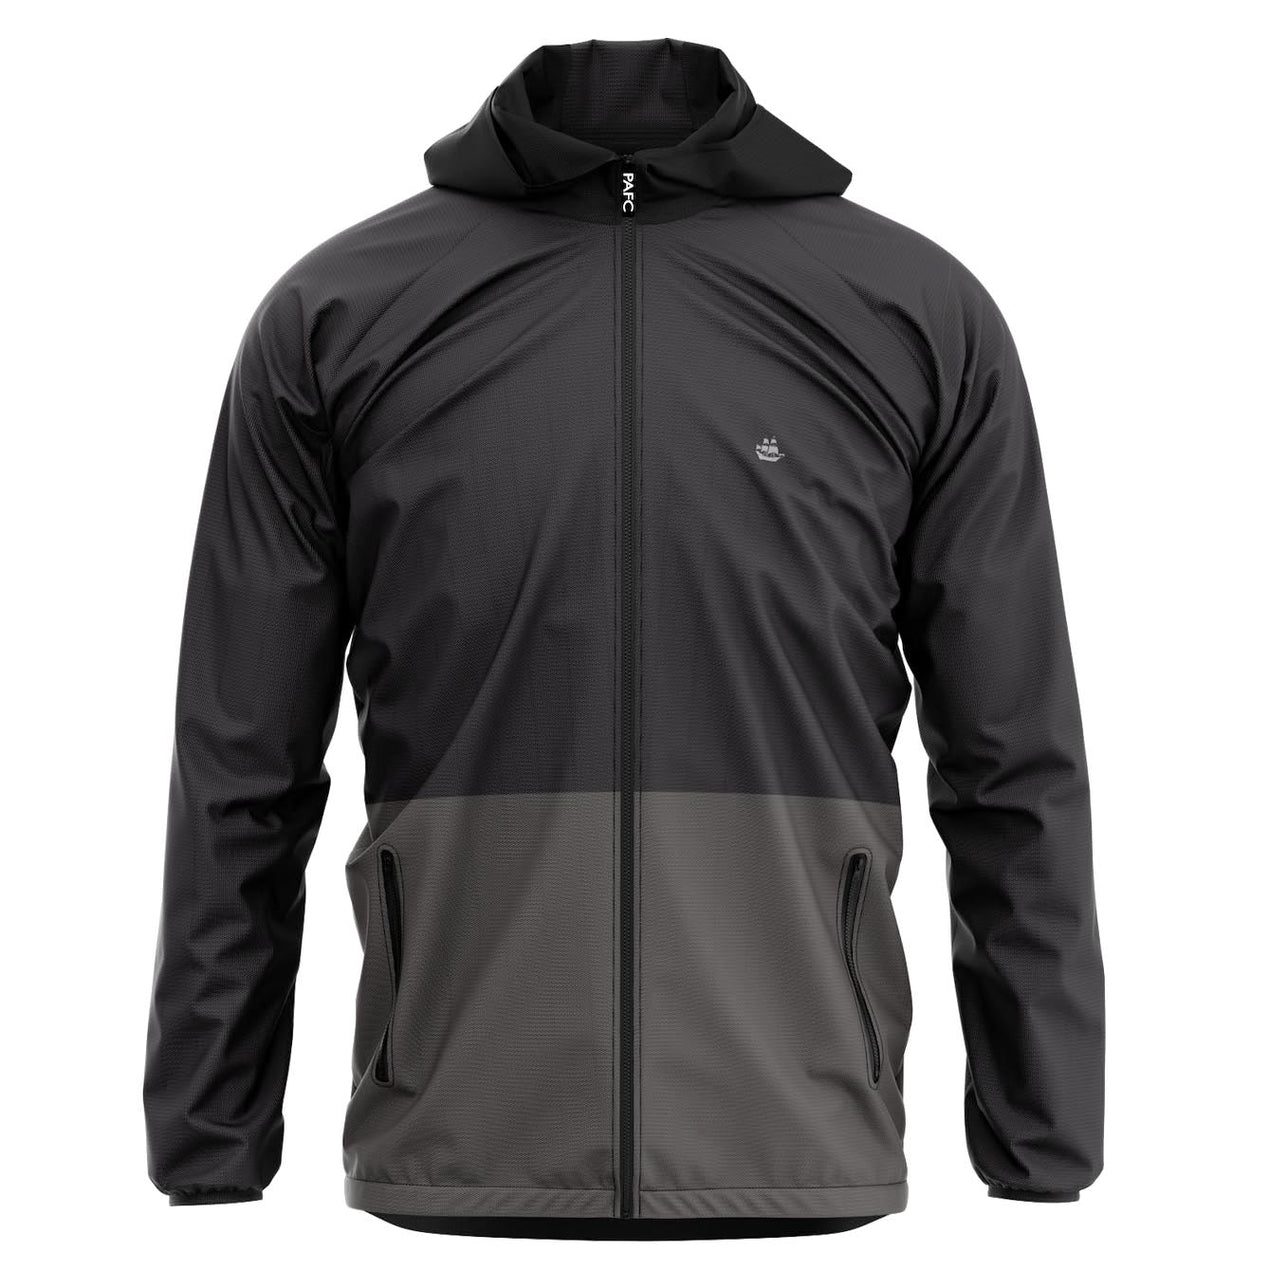 Mayflower Windproof Jacket